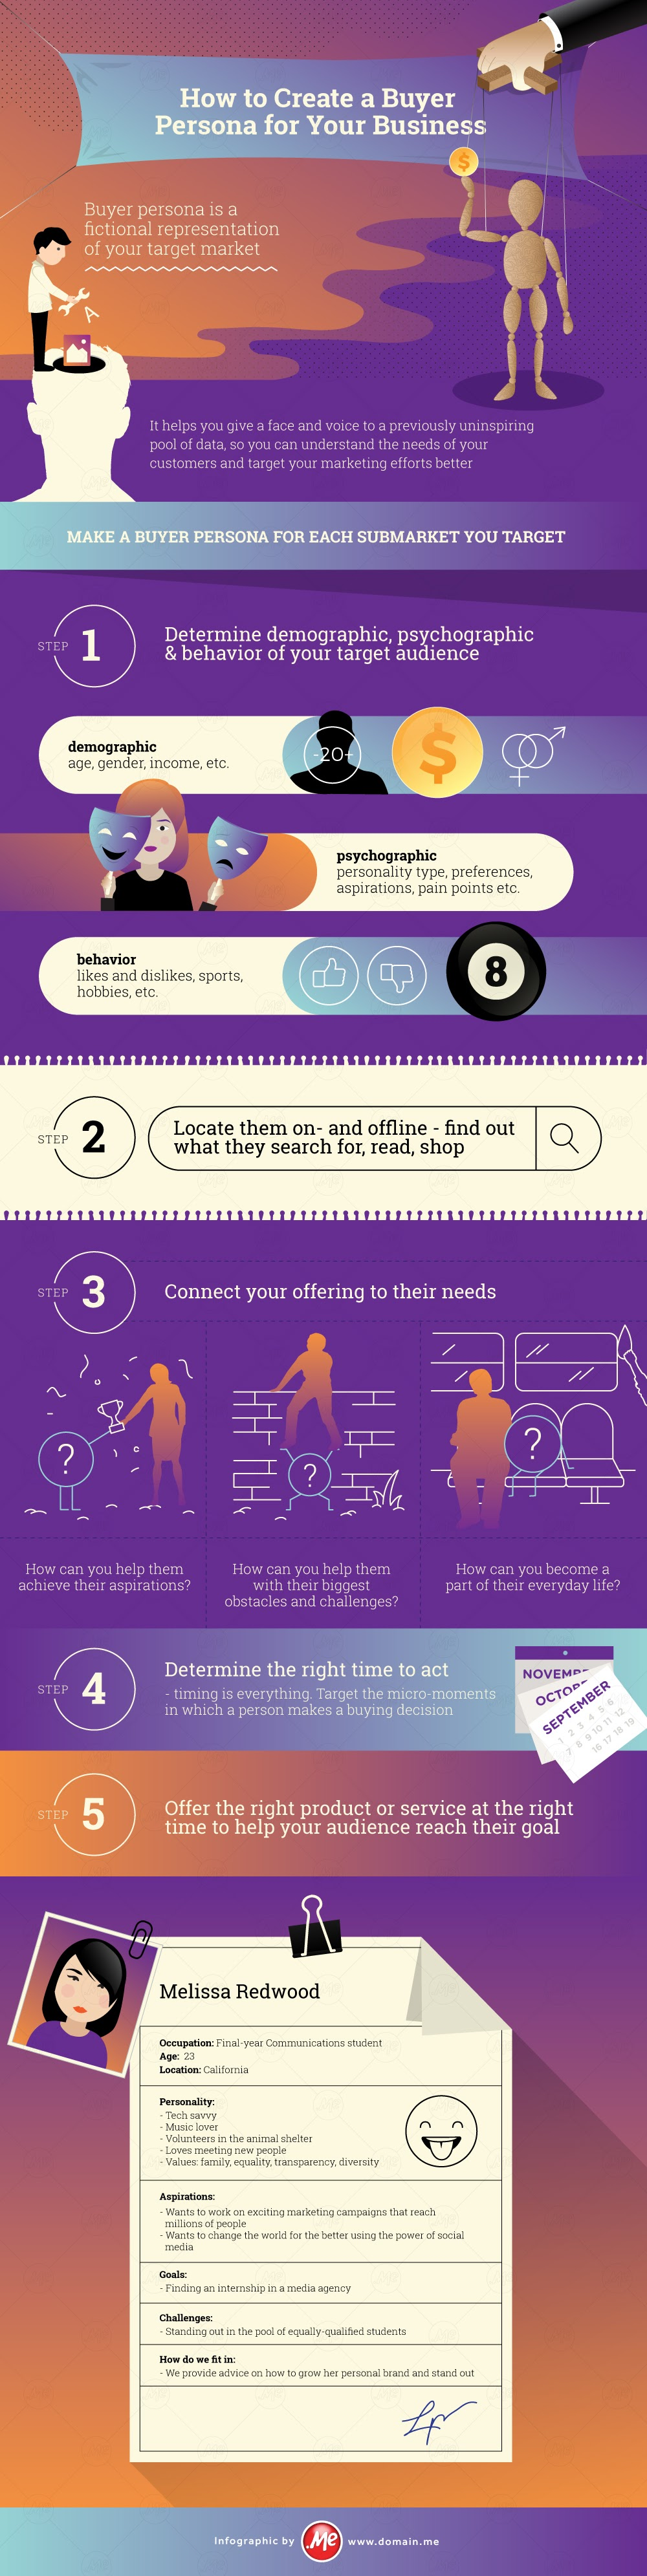 How to Create a Buyer Persona for Your Business #infographic